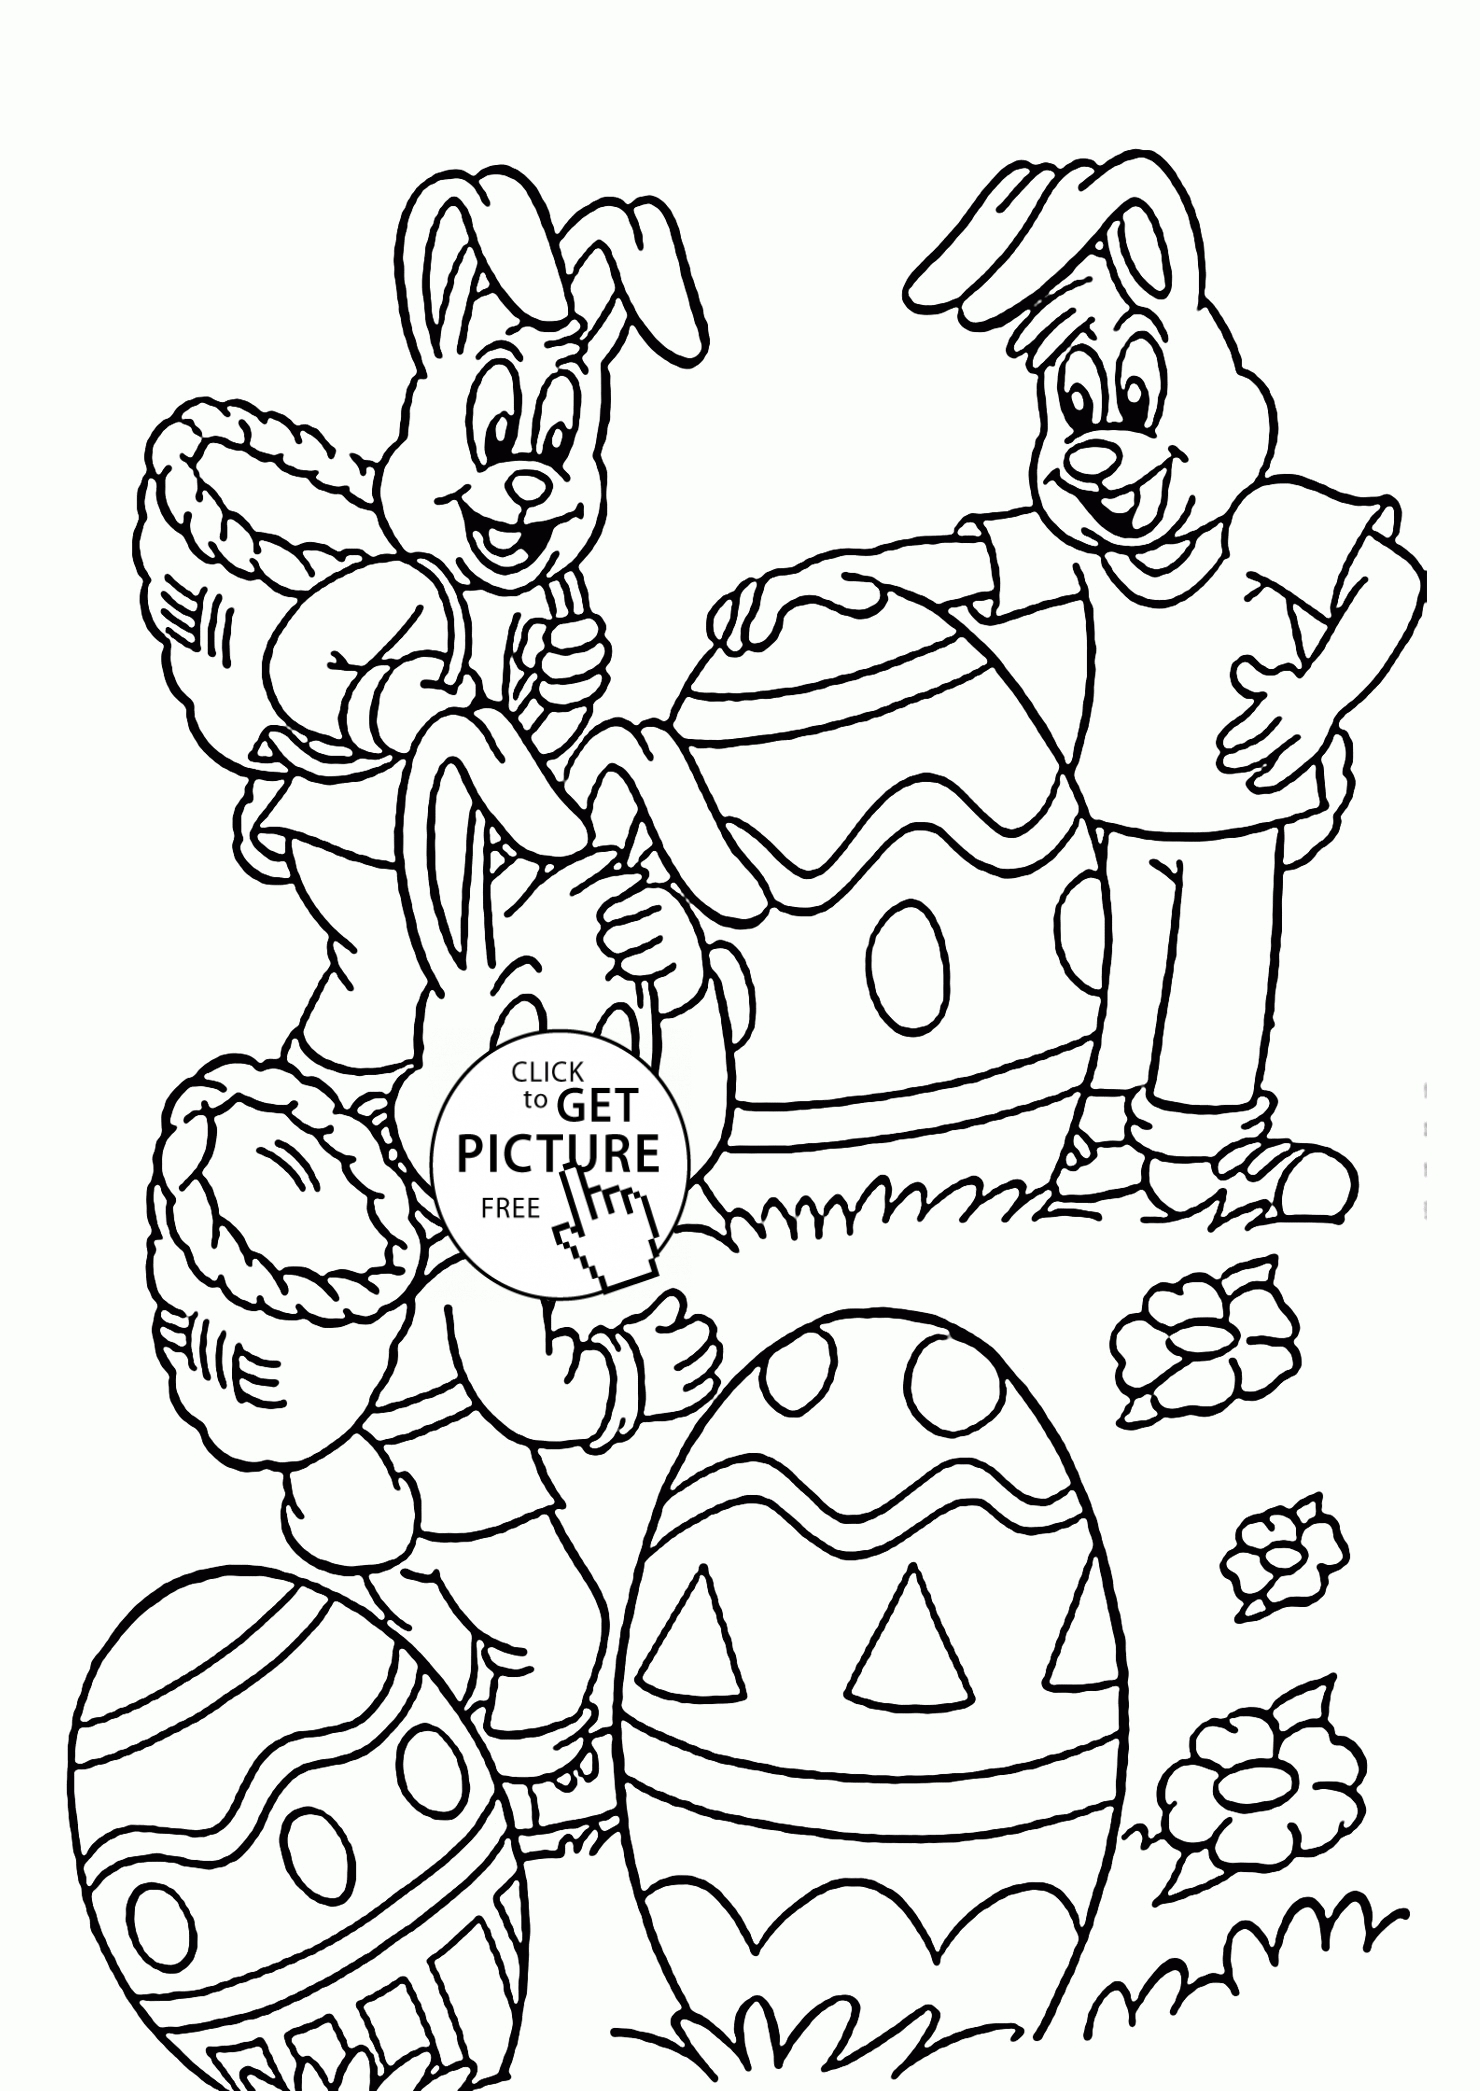 28 easter bunny coloring pages images - Free Coloring Pages Easter Bunny 2